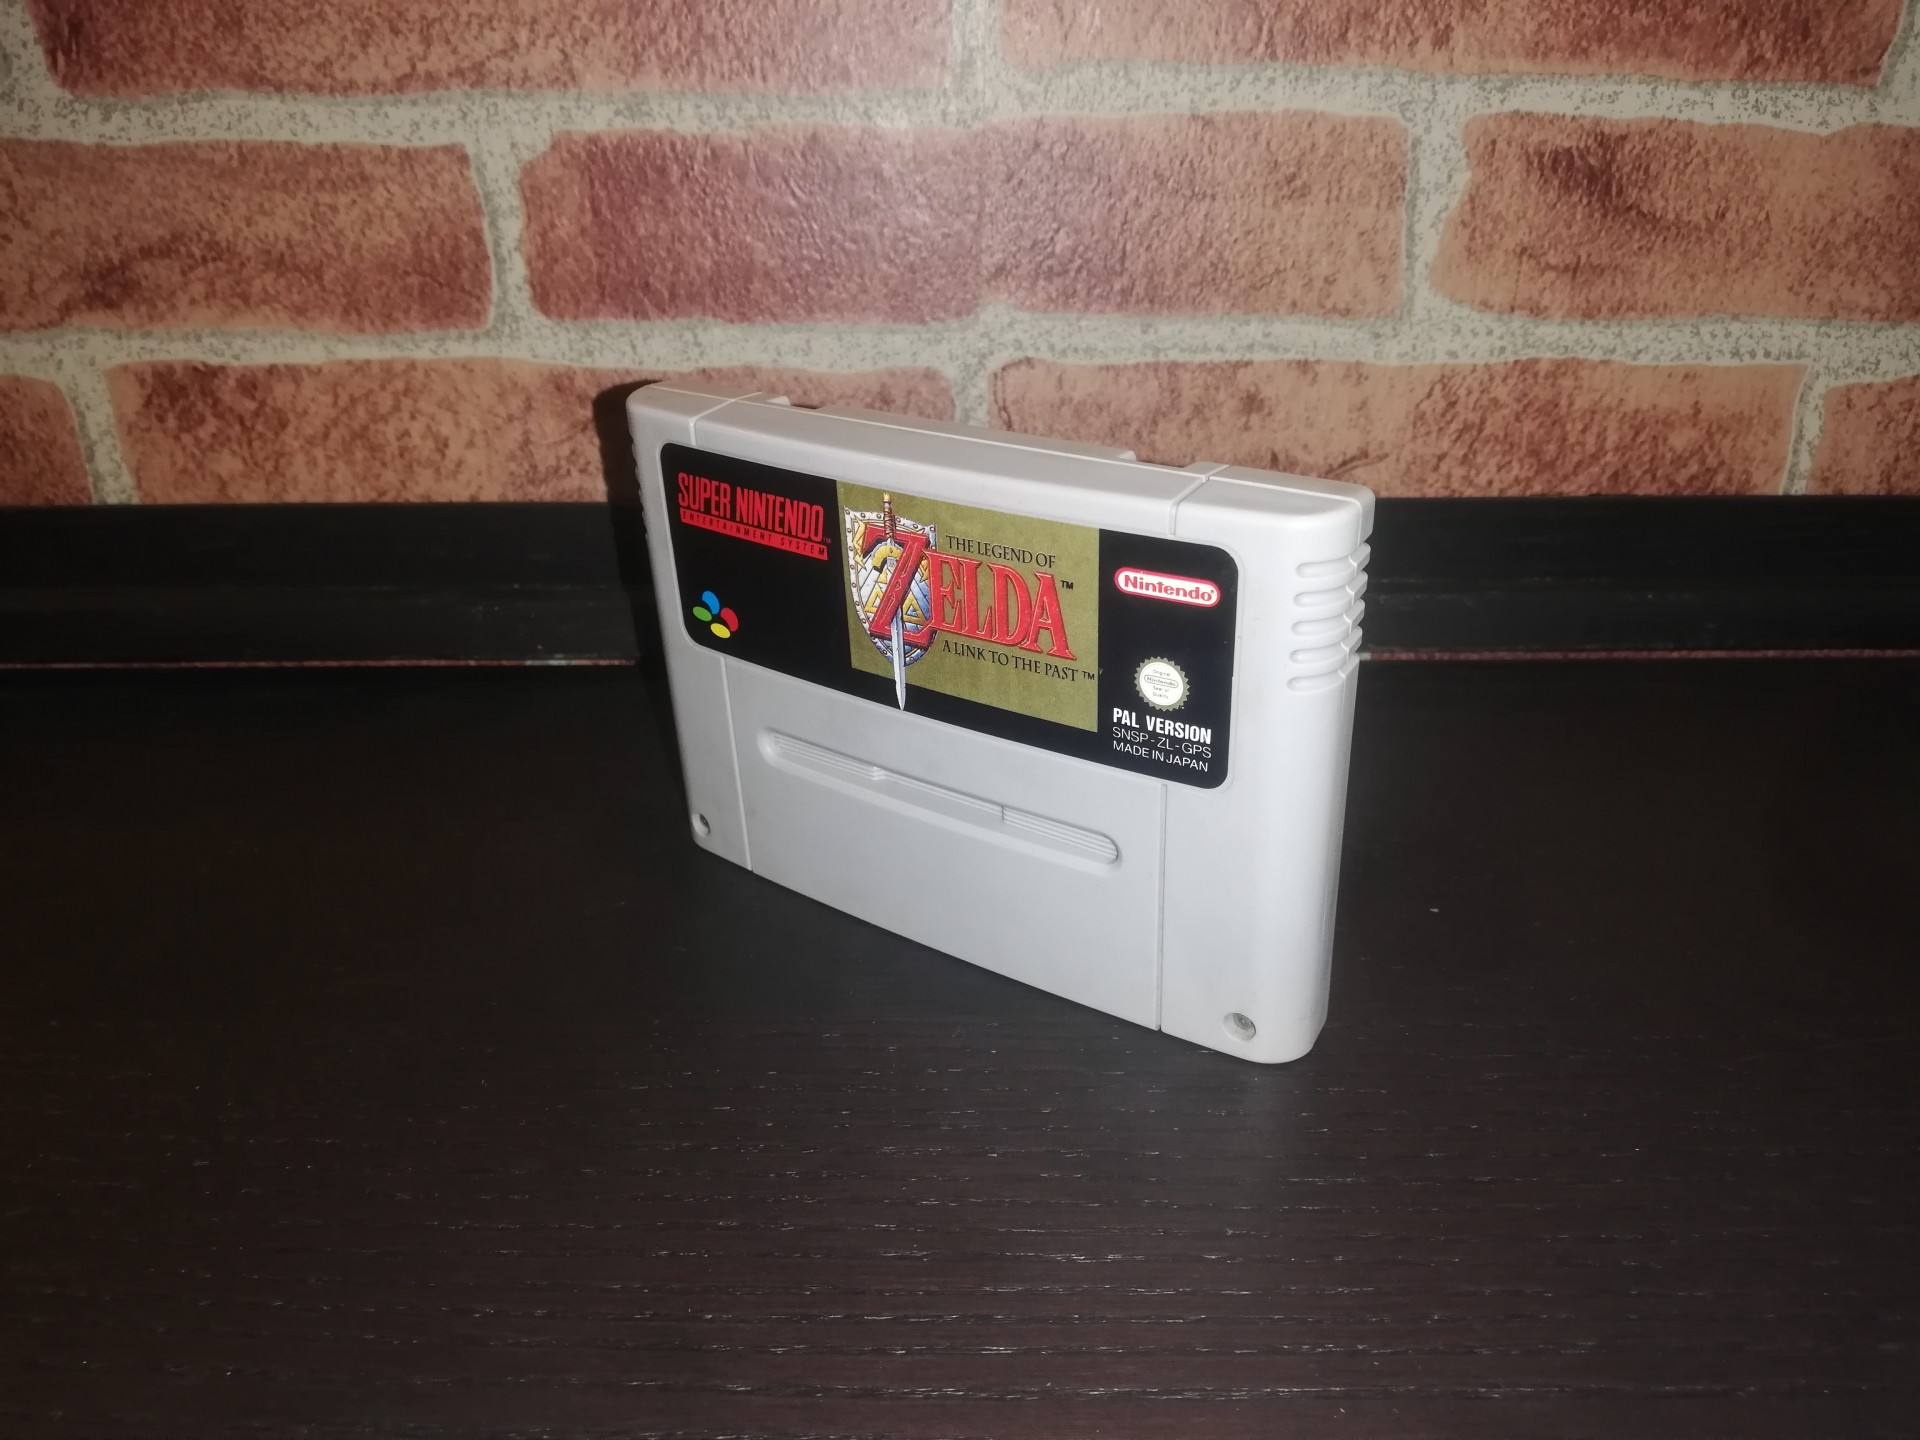 The Legend of Zelda: A Link to the Past [Cartucho] - SNES